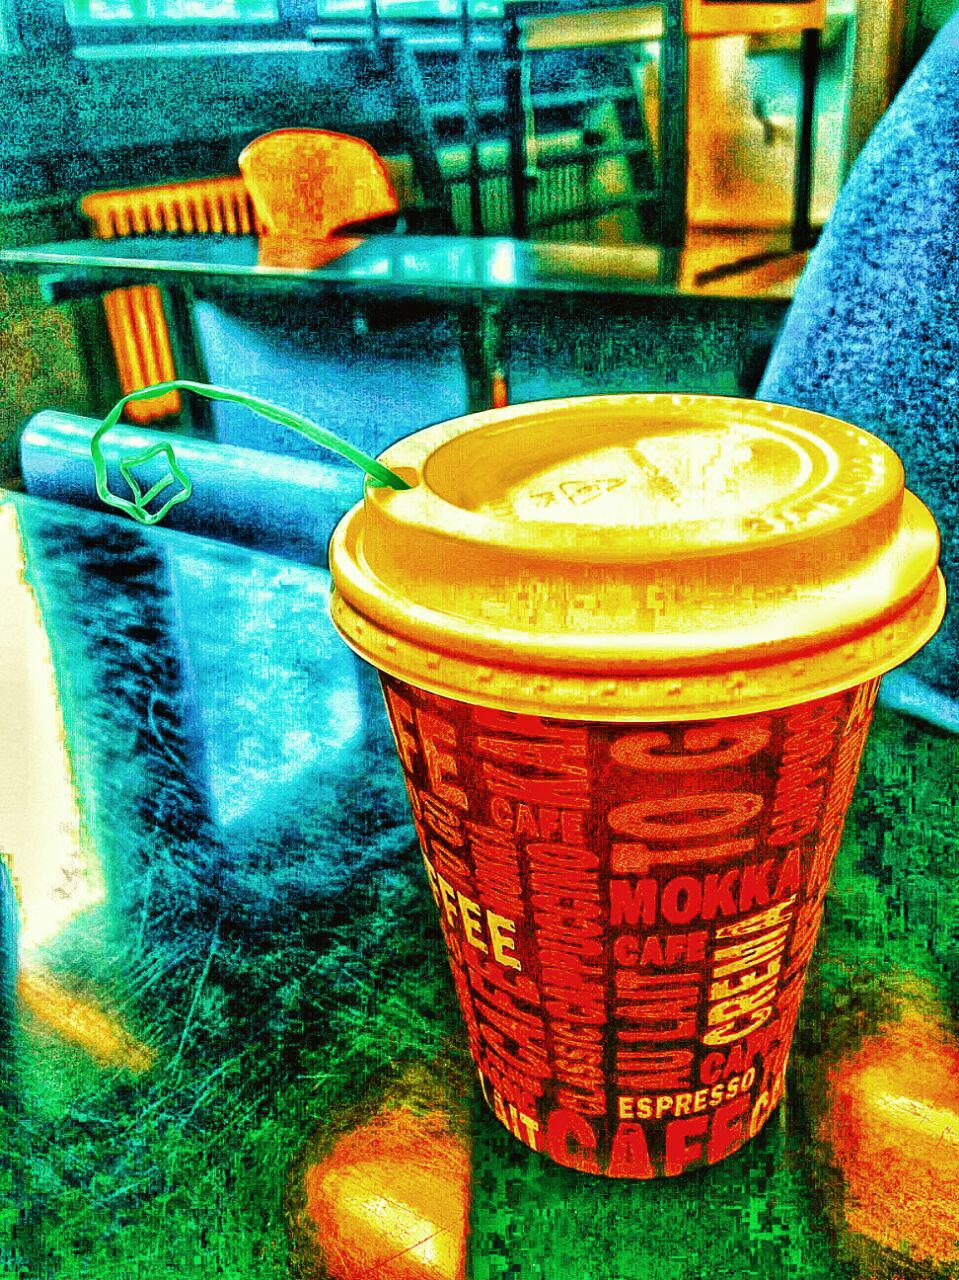 Artistic image of a paper coffee mug with a star coming out of the cap. The straw is curled into a spiral, which gives it the look of an insects antenna.